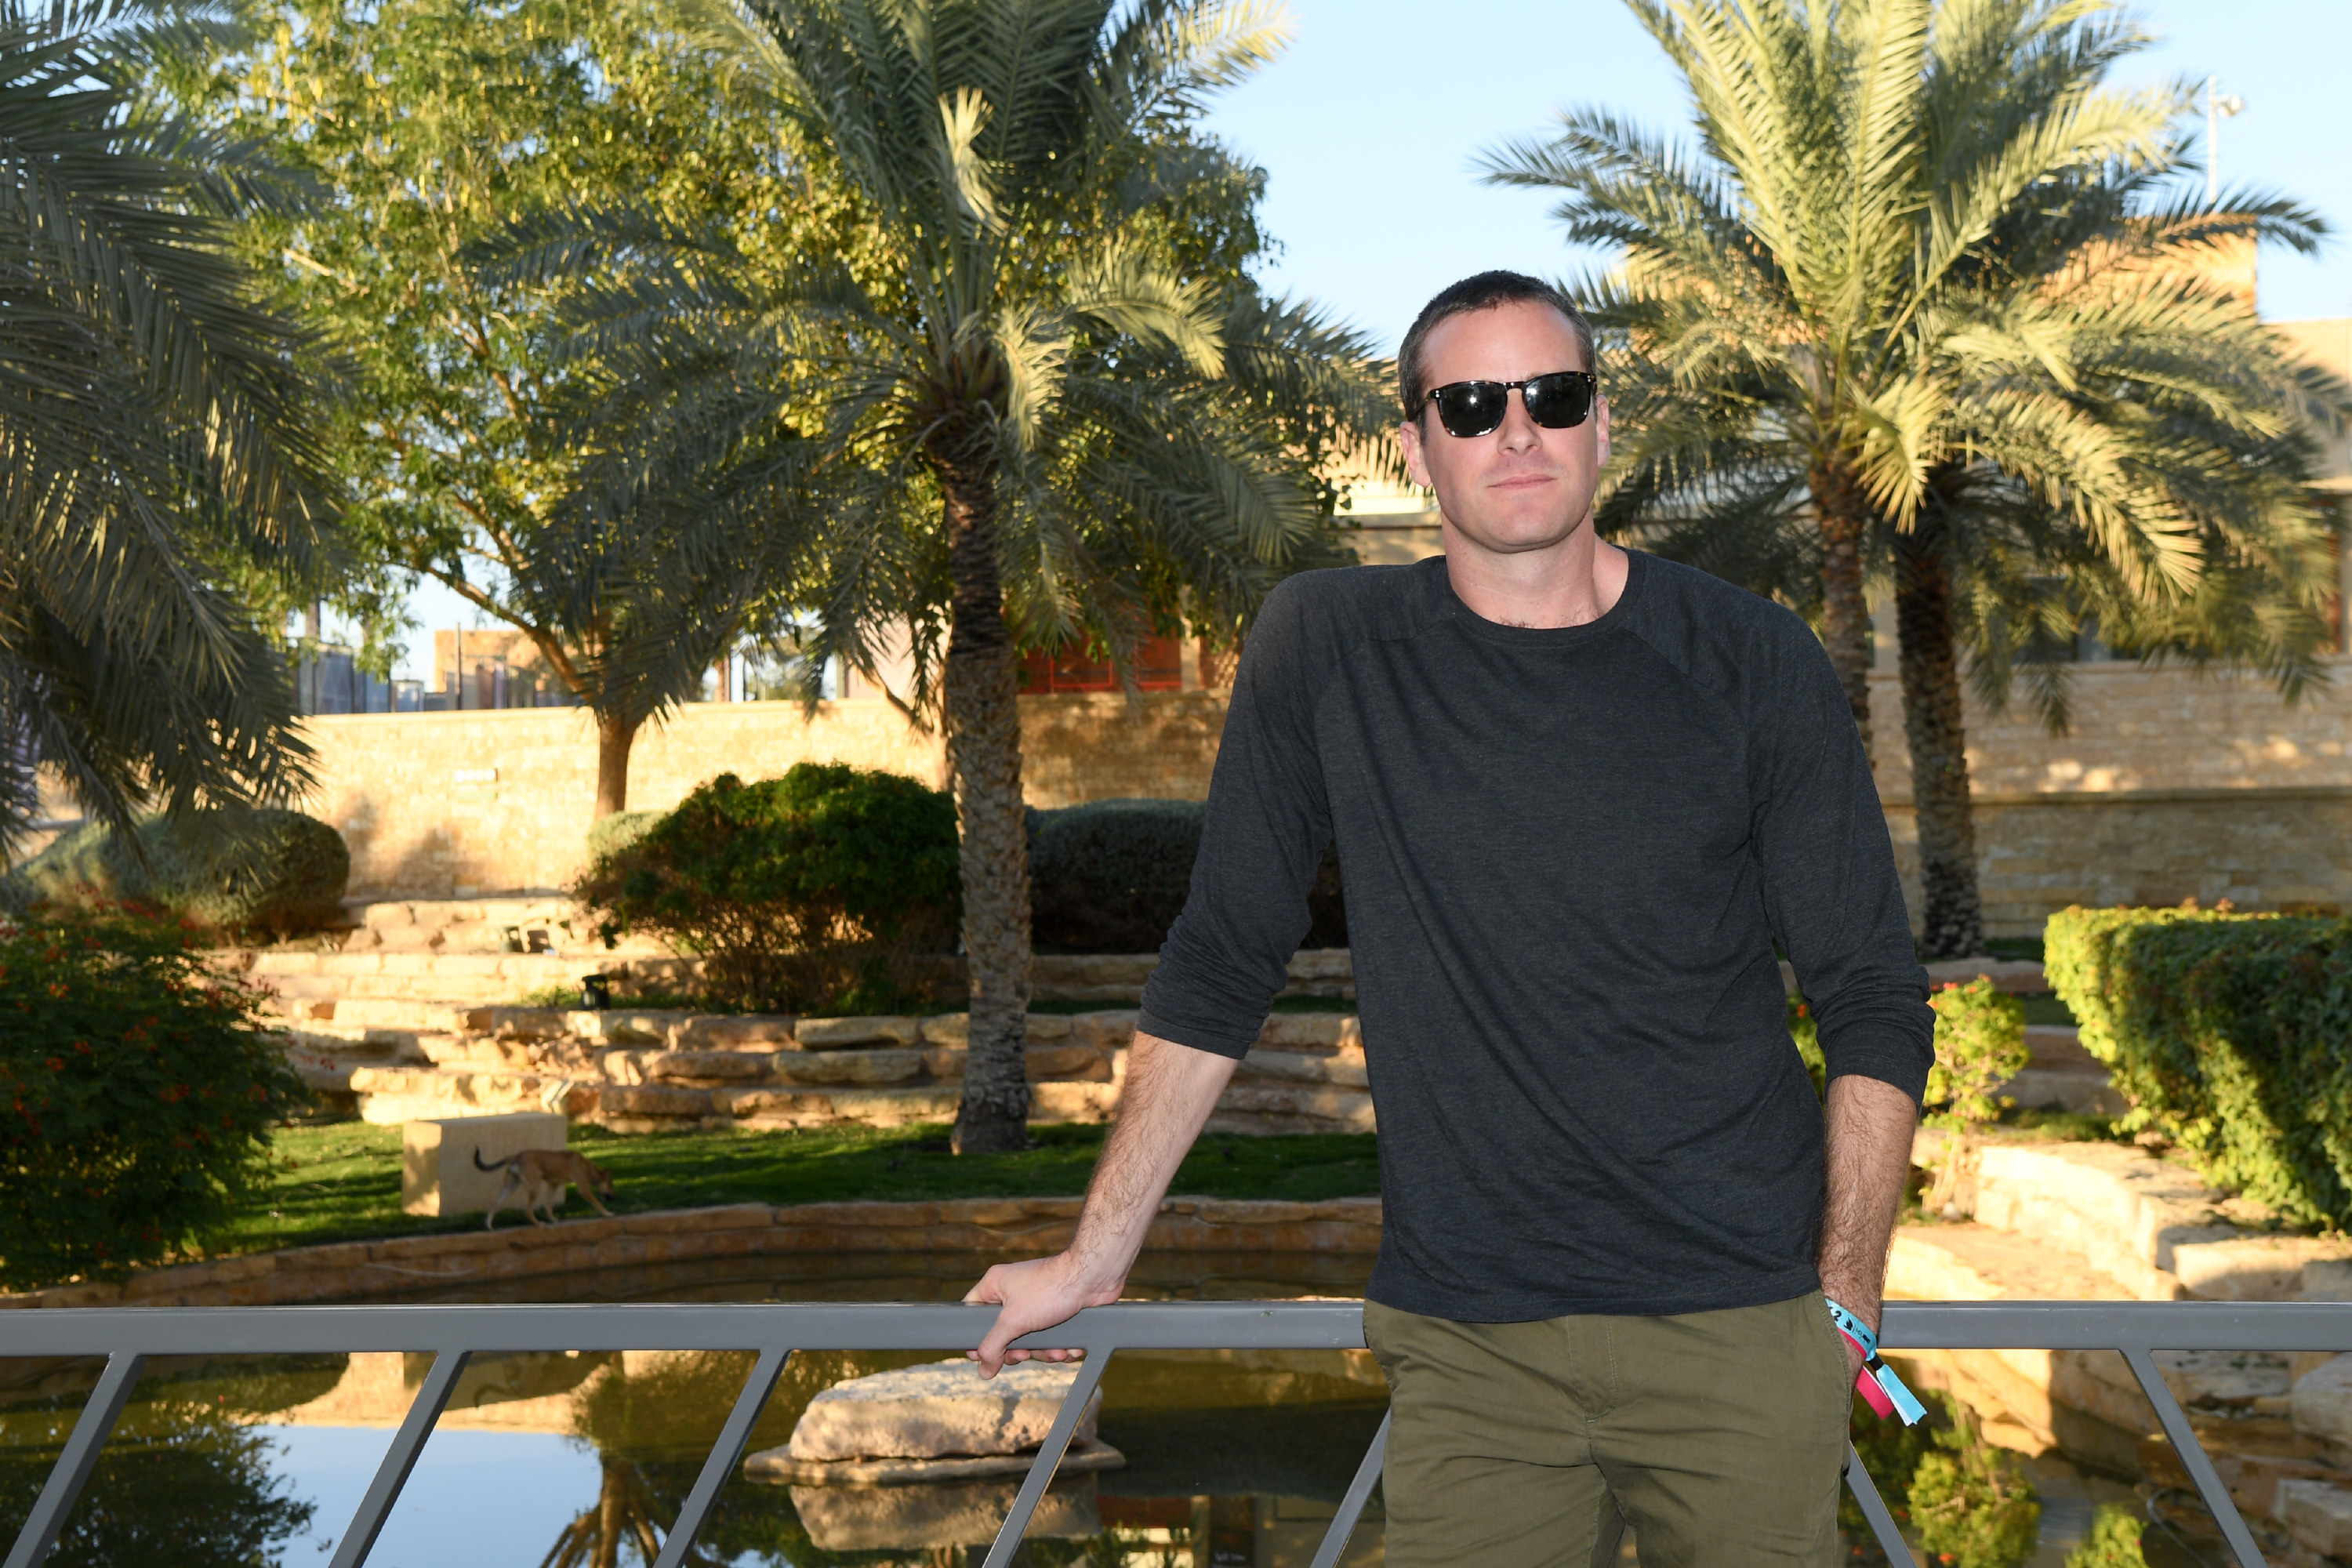 Armie Hammer in sunglasses, a gray long-sleeved shirt, and dark green pants at the MDL Beast Festival Lunch on December 21, 2019 in Riyadh, Saudi Arabia